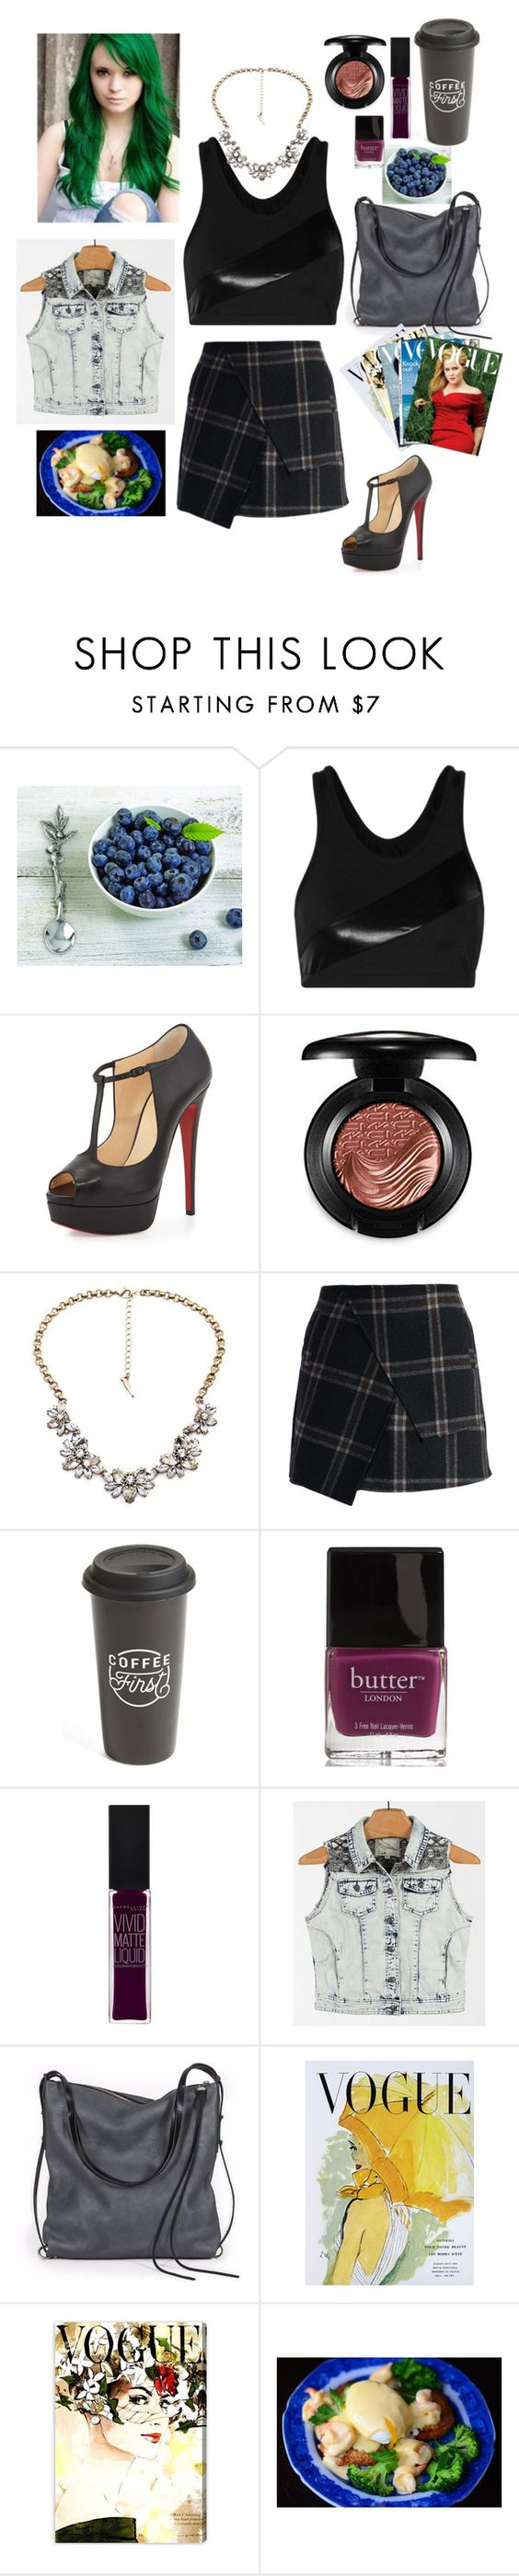 """Boss Ass B!tch"" by disney-geek-forever ❤ liked on Polyvore featuring Vagabond House, Norma Kamali, Christian Louboutin, MAC Cosmetics, Chicwish, The Created Co., Butter London, Maybelline, White Crow and Ina Kent"